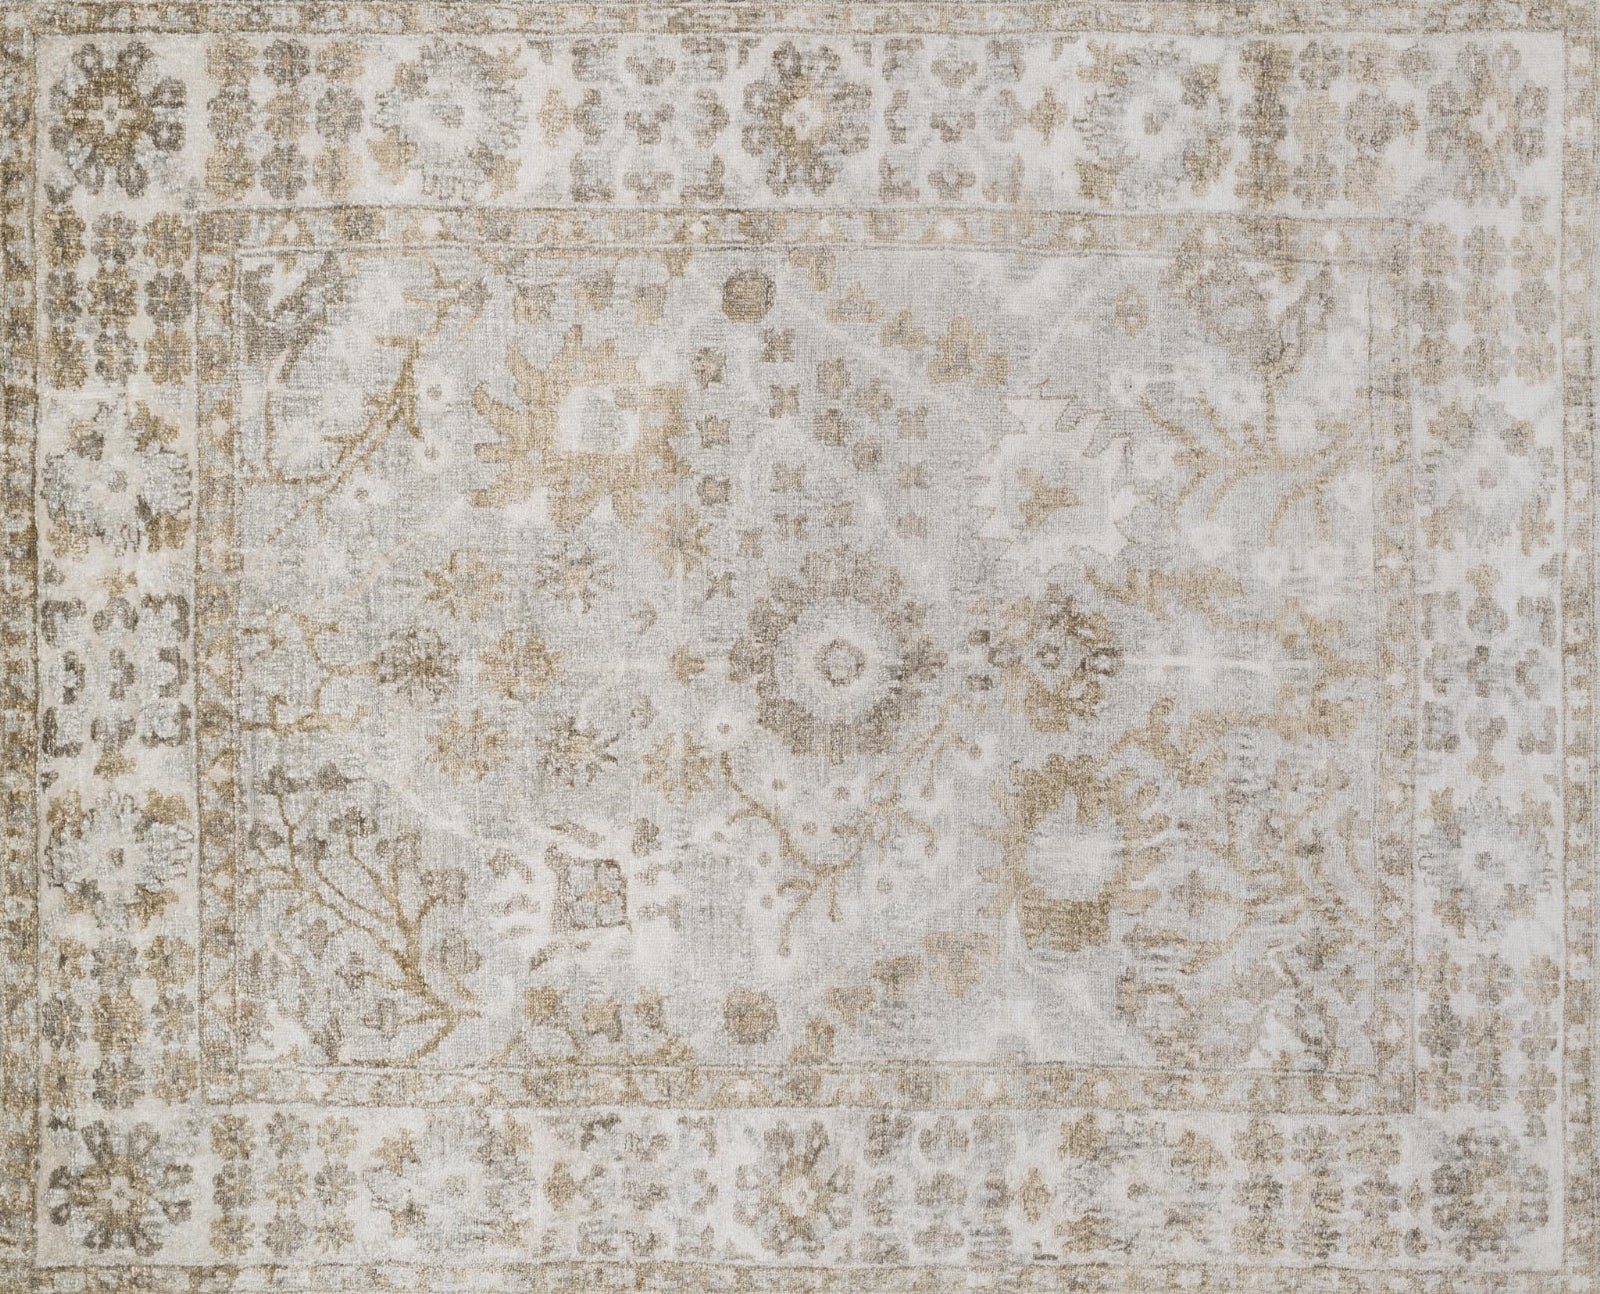 Loloi Imperial IM-02 Silver/Ivory Area Rug main image